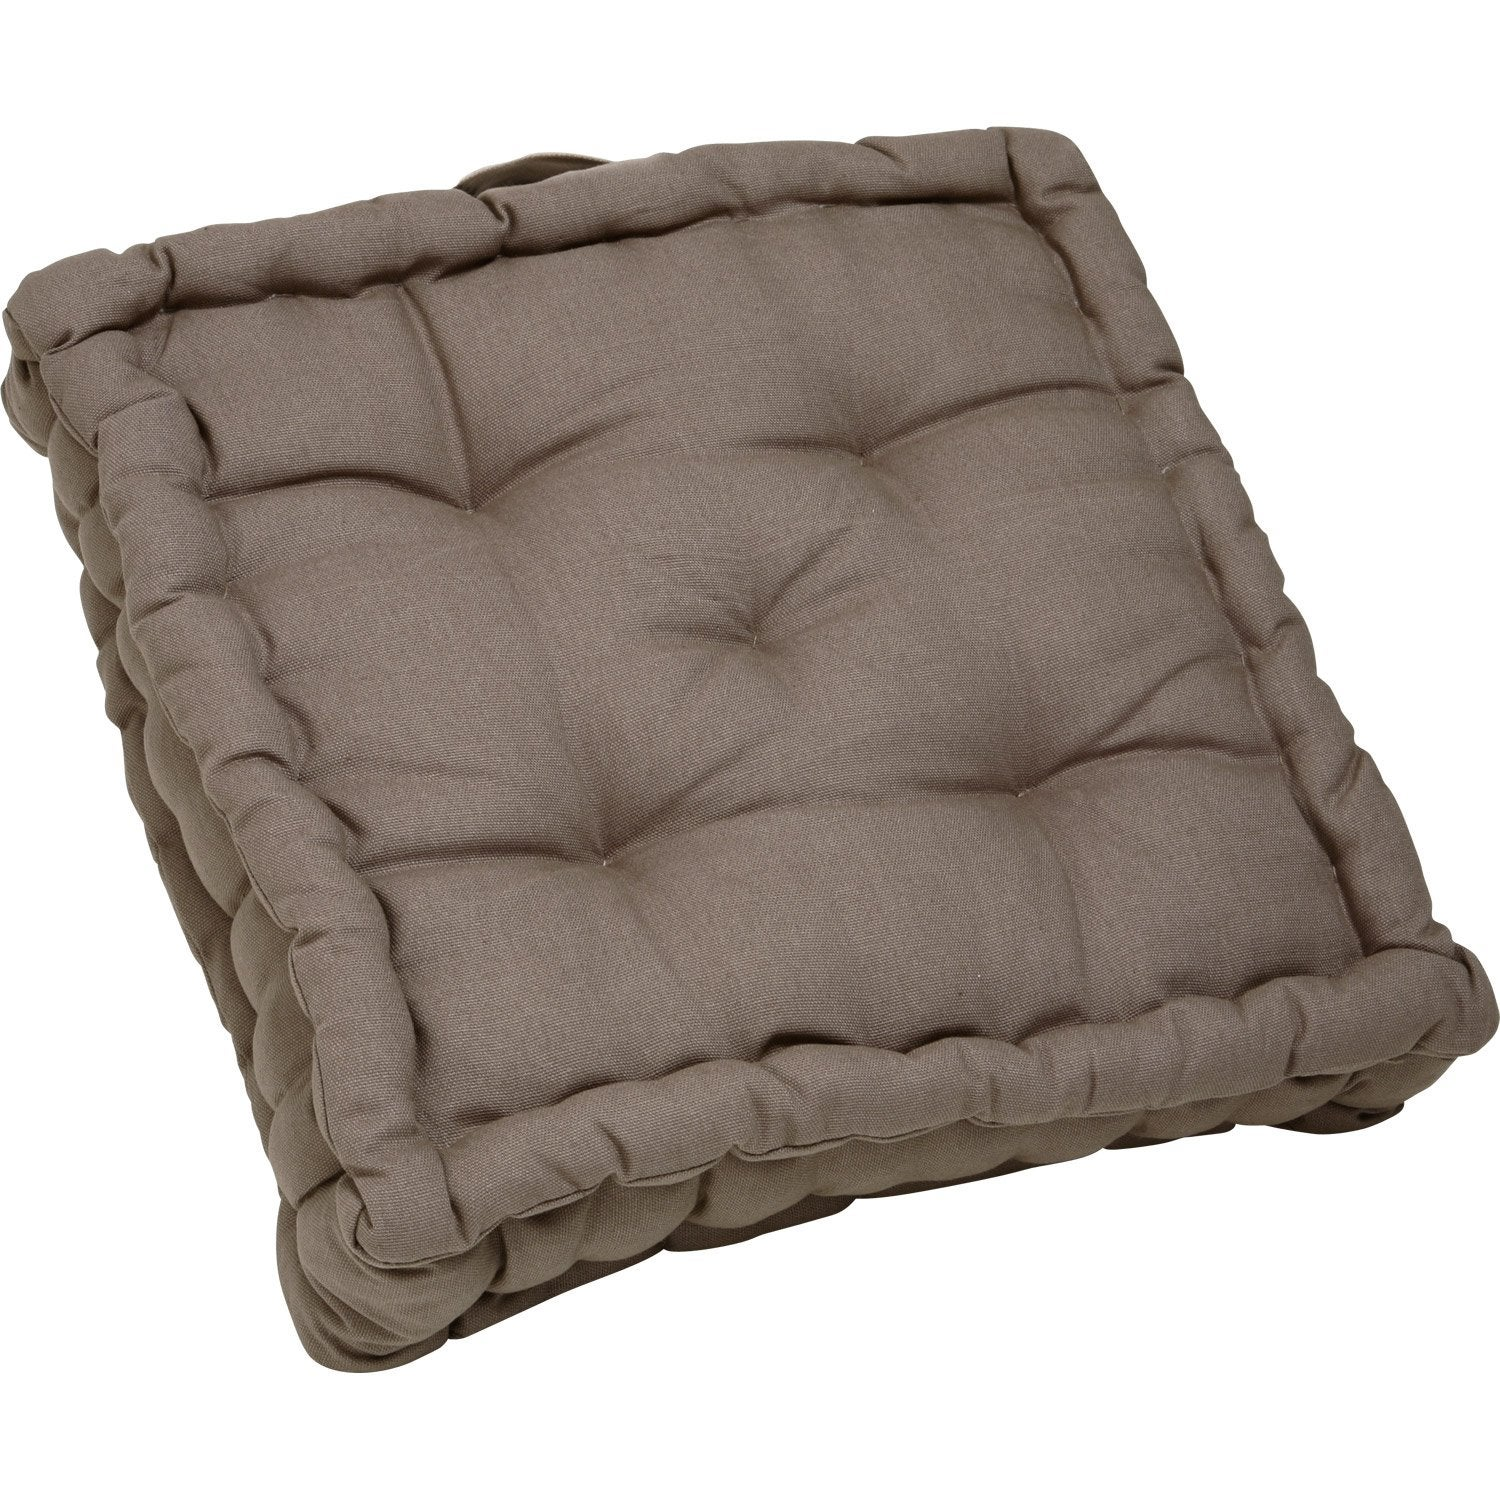 coussin de sol cl a inspire brun taupe n 3 x x cm leroy merlin. Black Bedroom Furniture Sets. Home Design Ideas